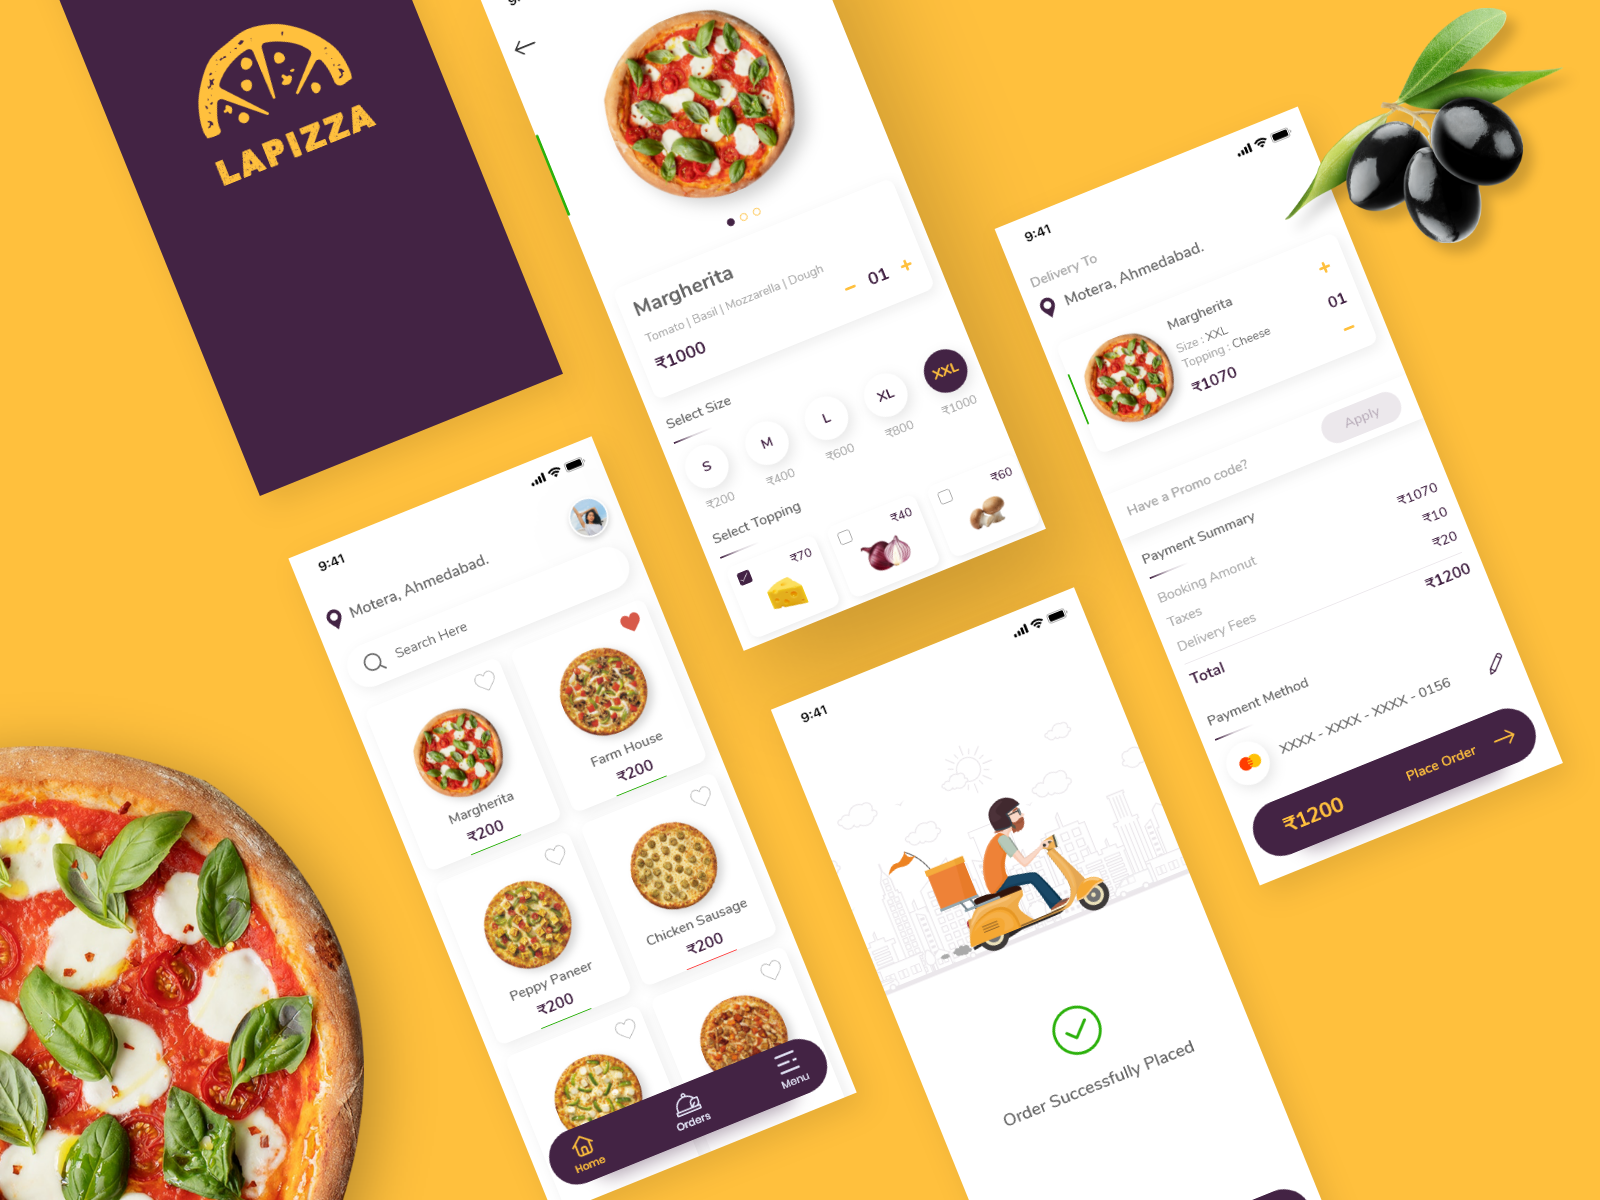 lapizza-food-delivery-app